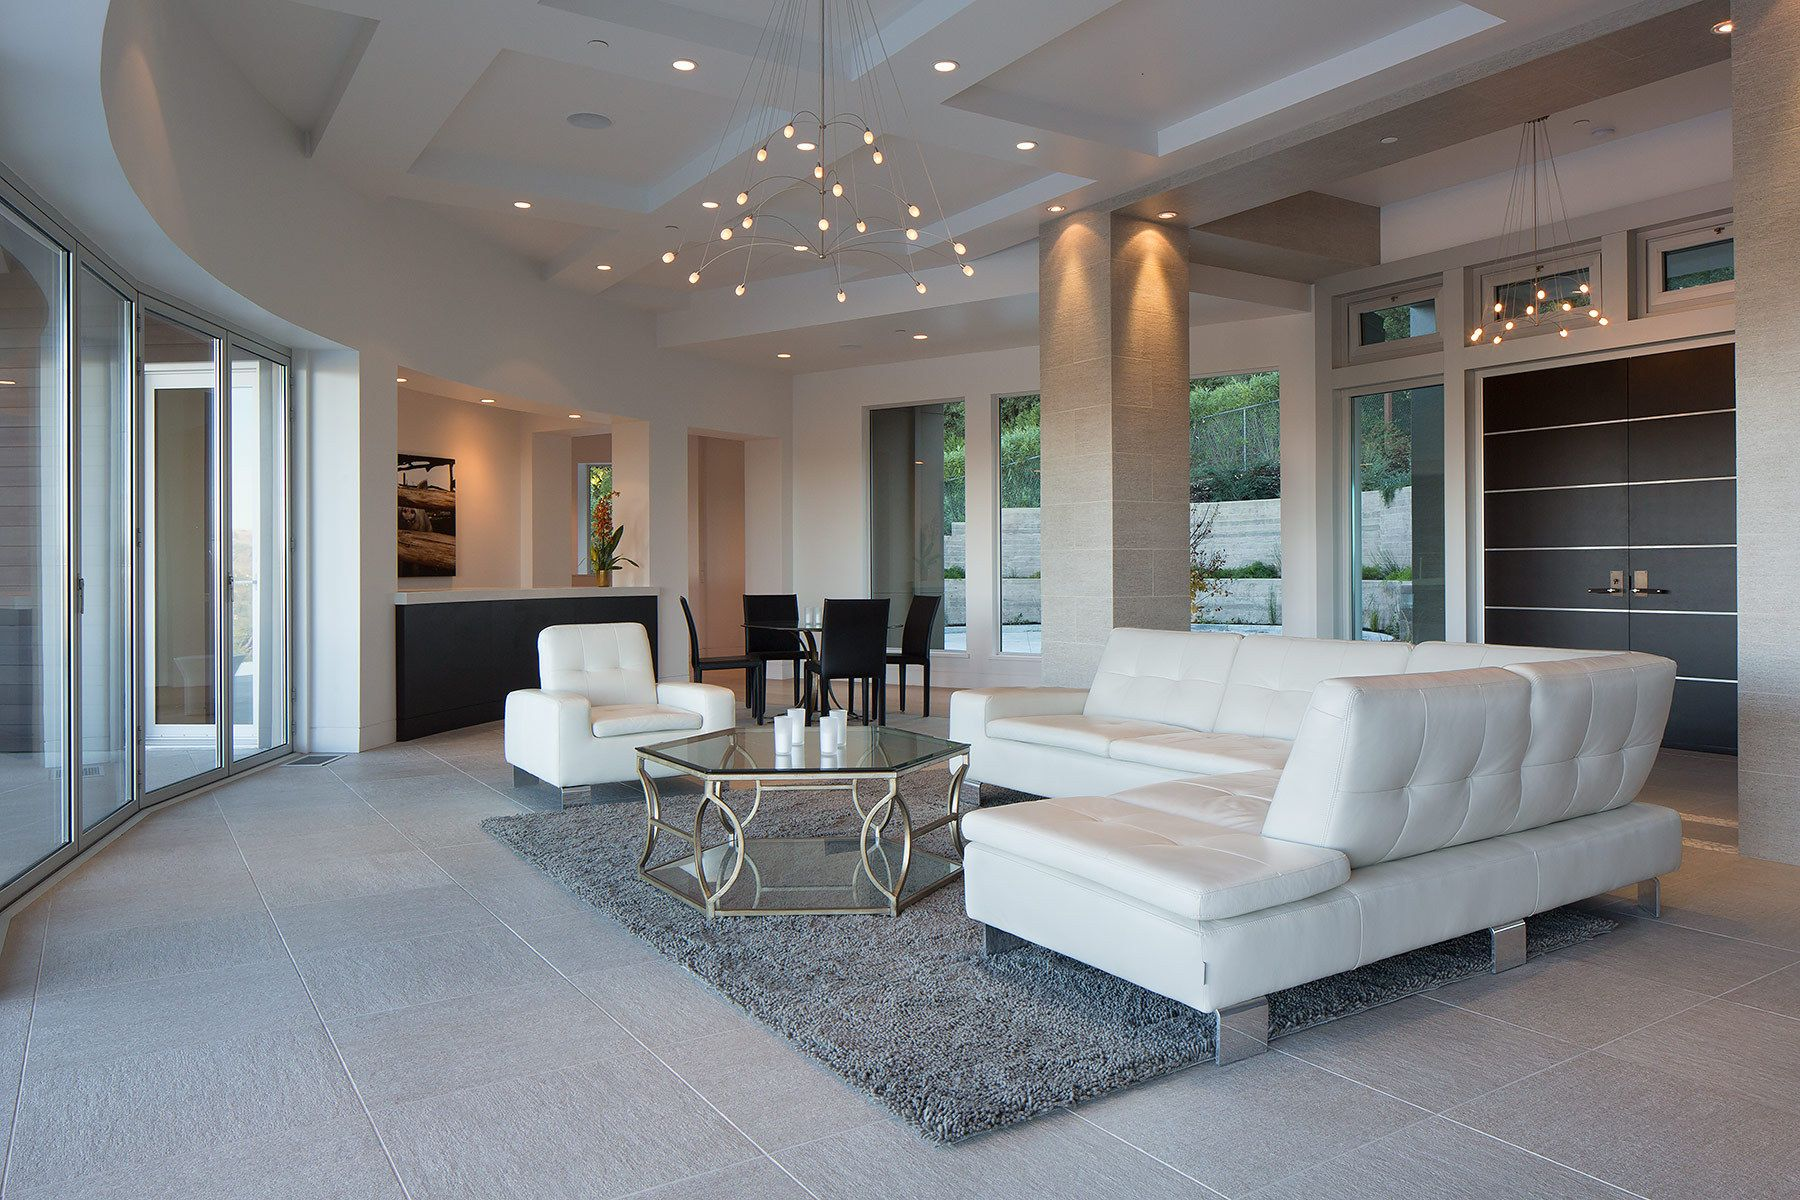 Francis Garcia, Architect, Wendi Zampino, Home Systems, Interior Design